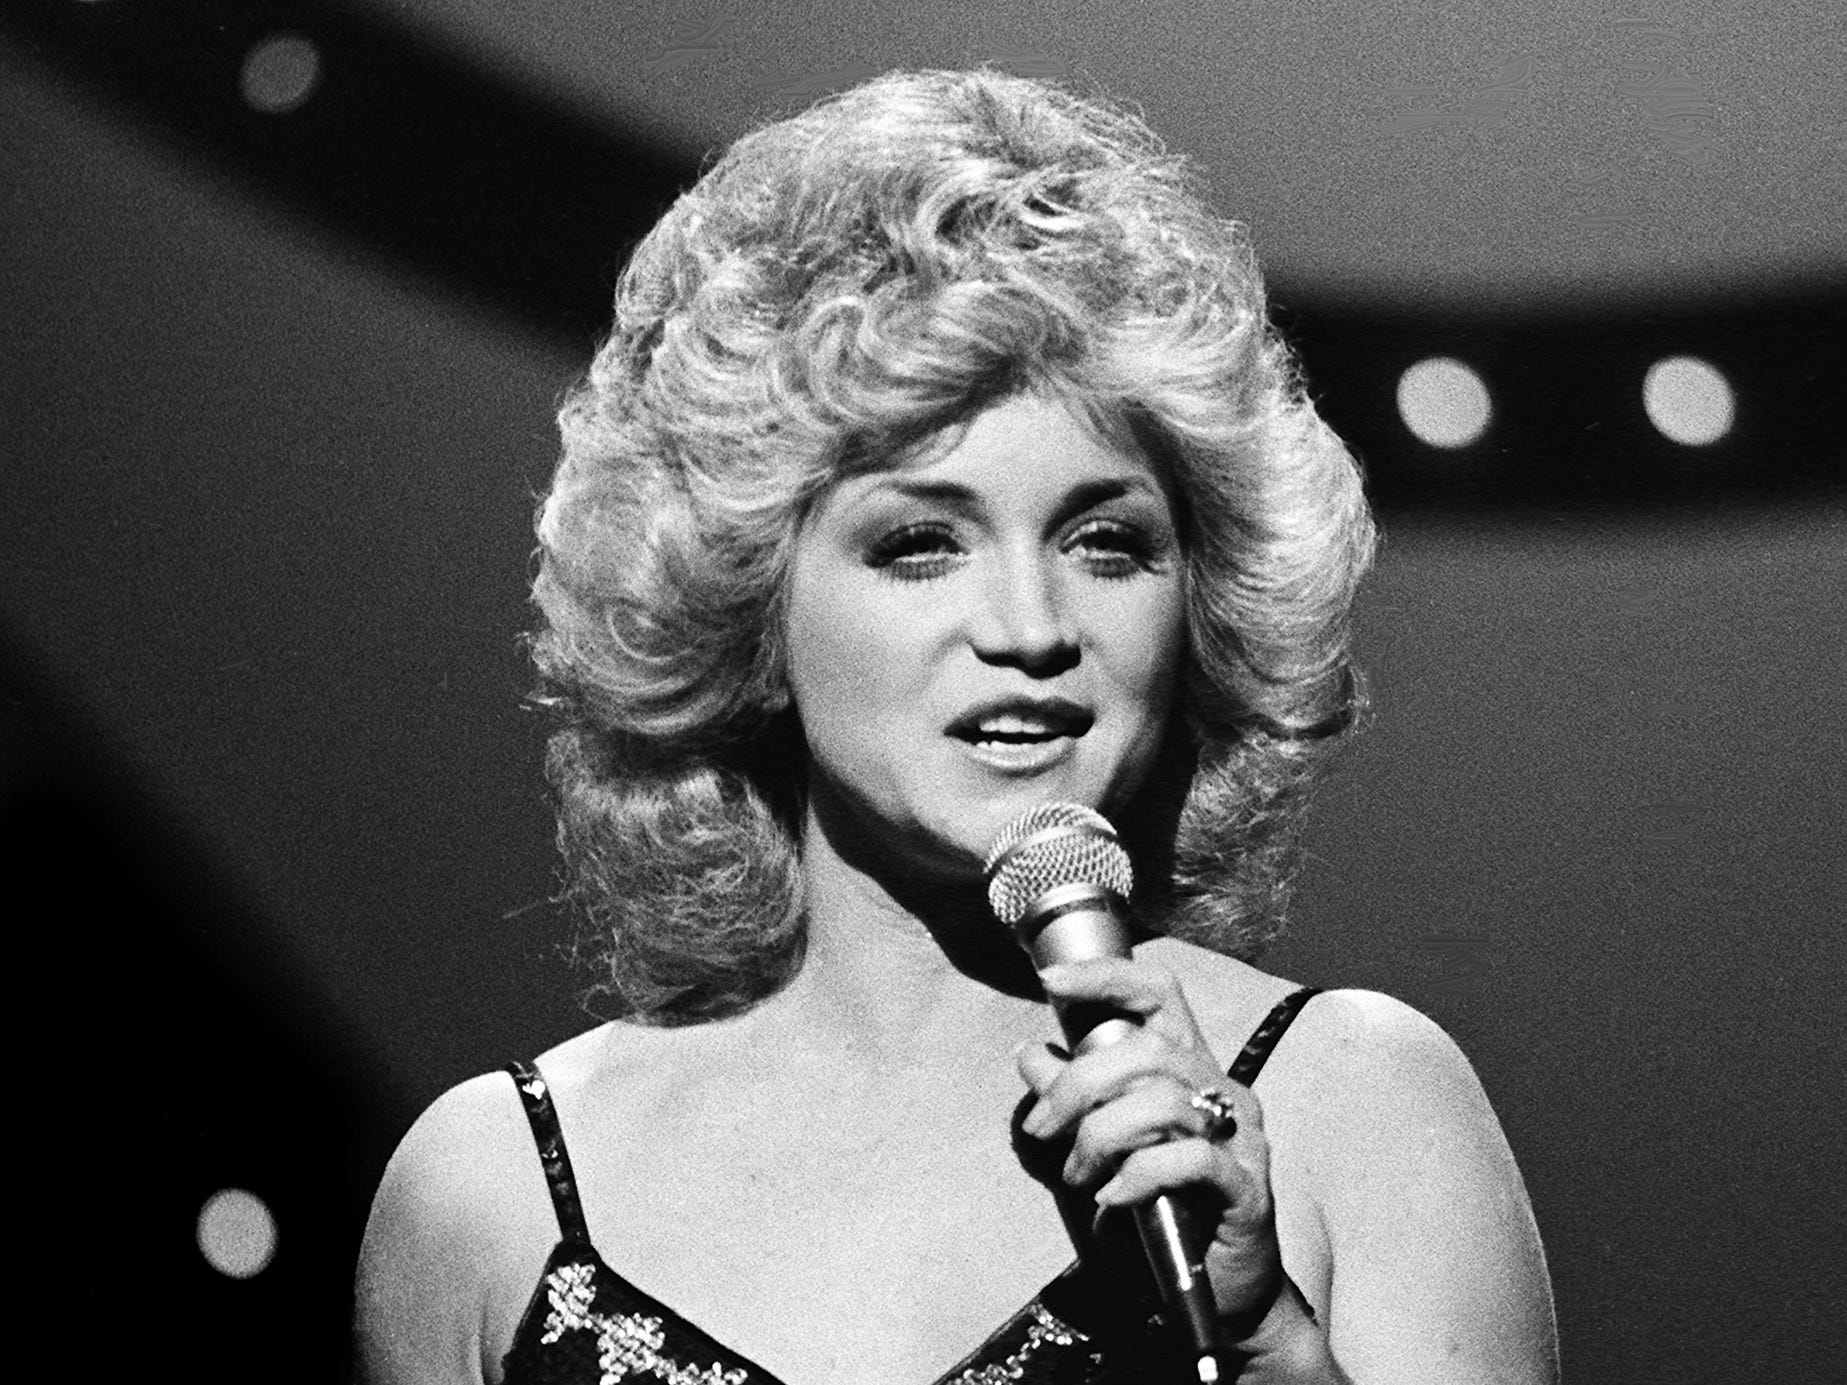 Barbara Mandrell performs during the 12th annual CMA Awards show Oct. 9, 1978. Mandrell was a nominee for the Female Vocalist of the Year award.